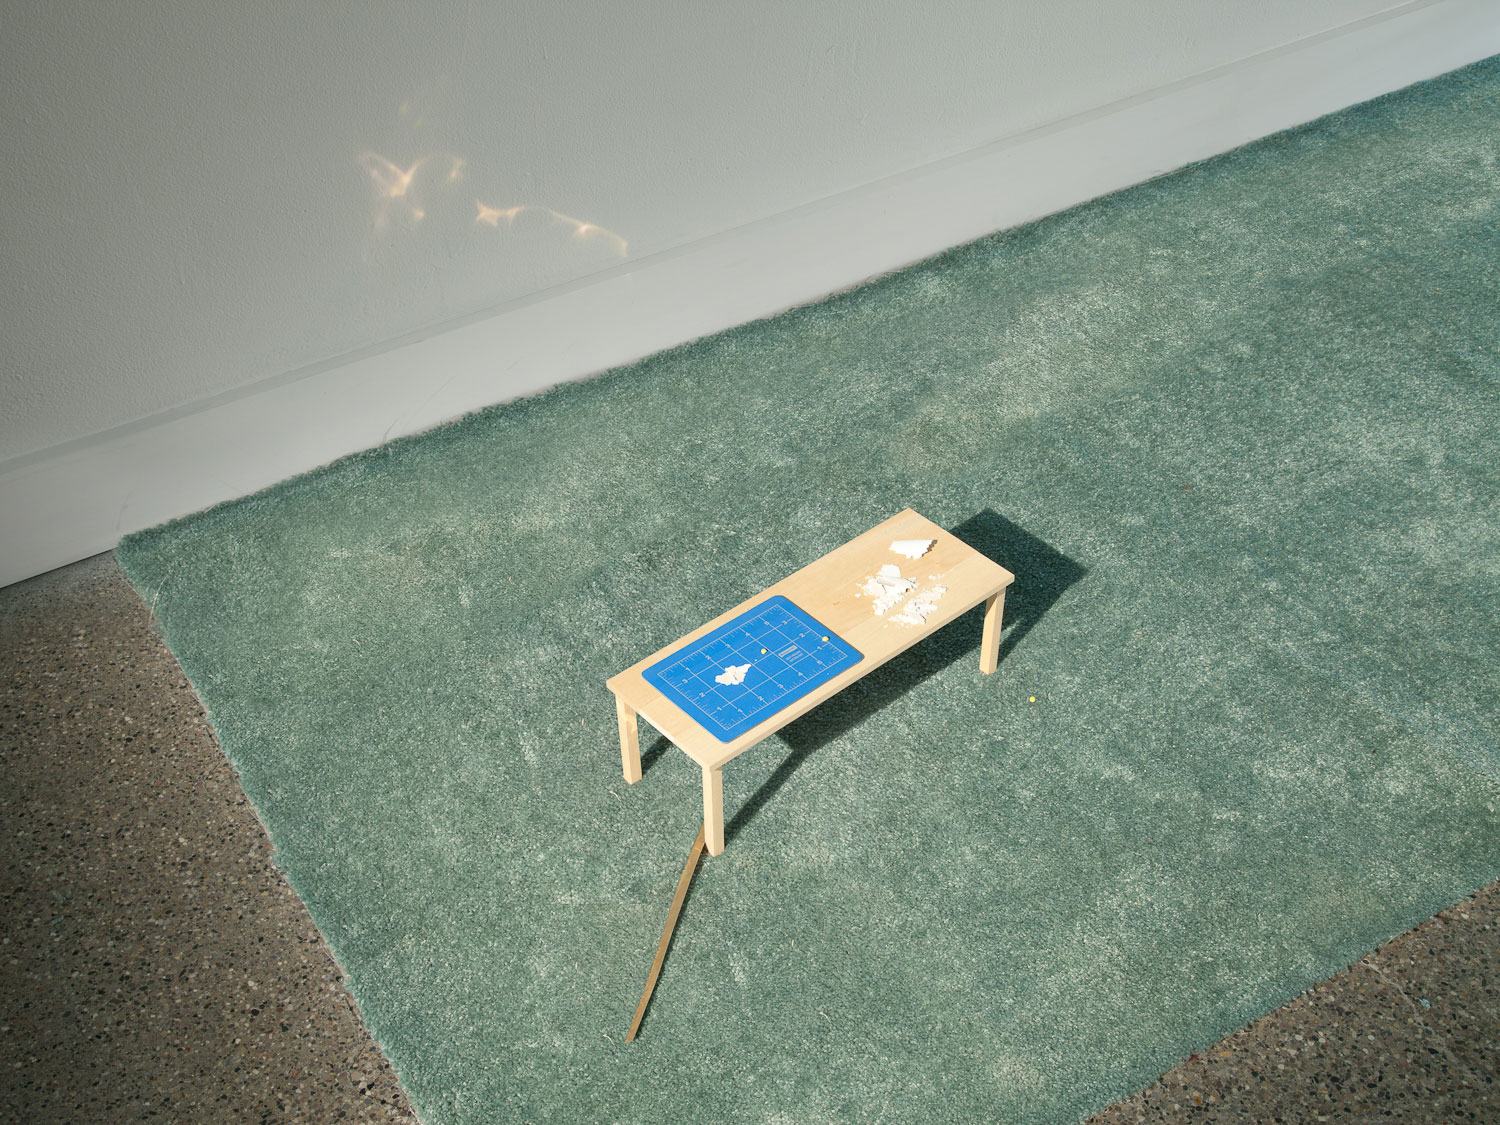 Research  2011 144 x 36 x 6 in. carpet, wood, cutting mat, paint, gold, spotlight, book, praying mantis, tape, vanity fixture, LED lamps